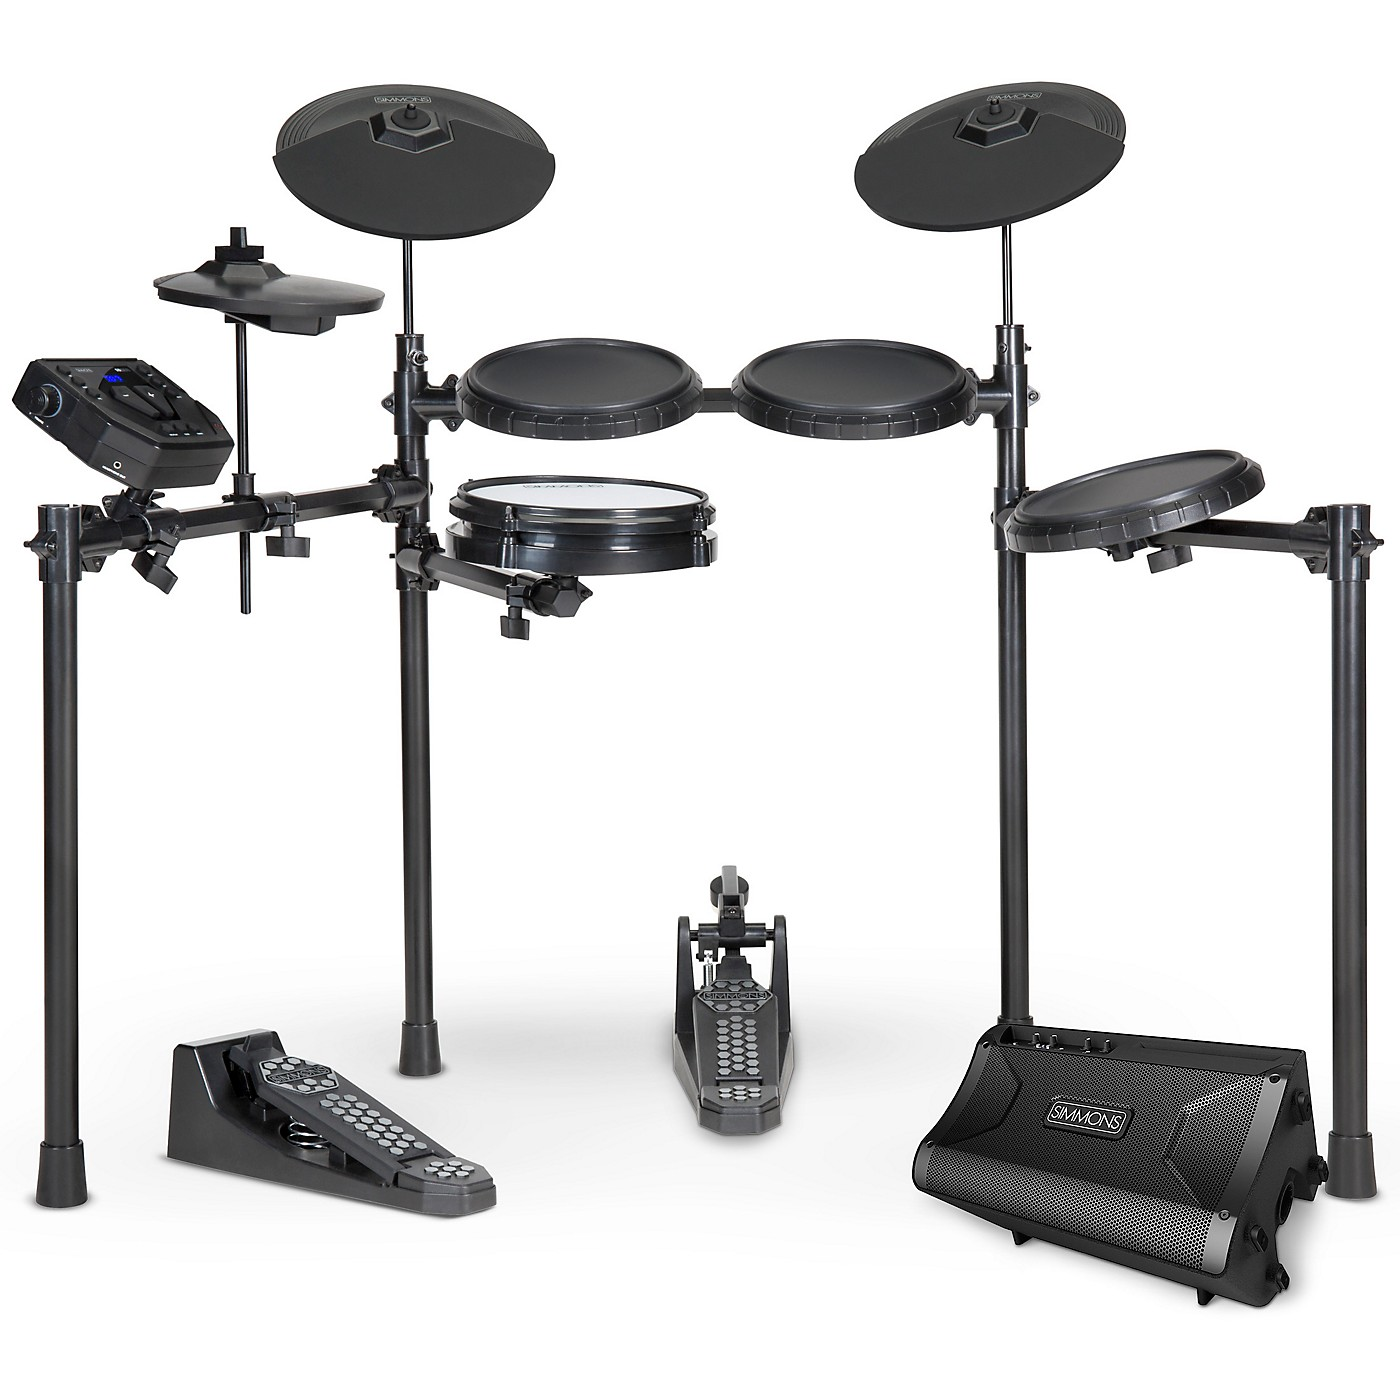 Simmons SD200 Electronic Drum Kit with Mesh Pads and DA2108 Drum Set Monitor thumbnail